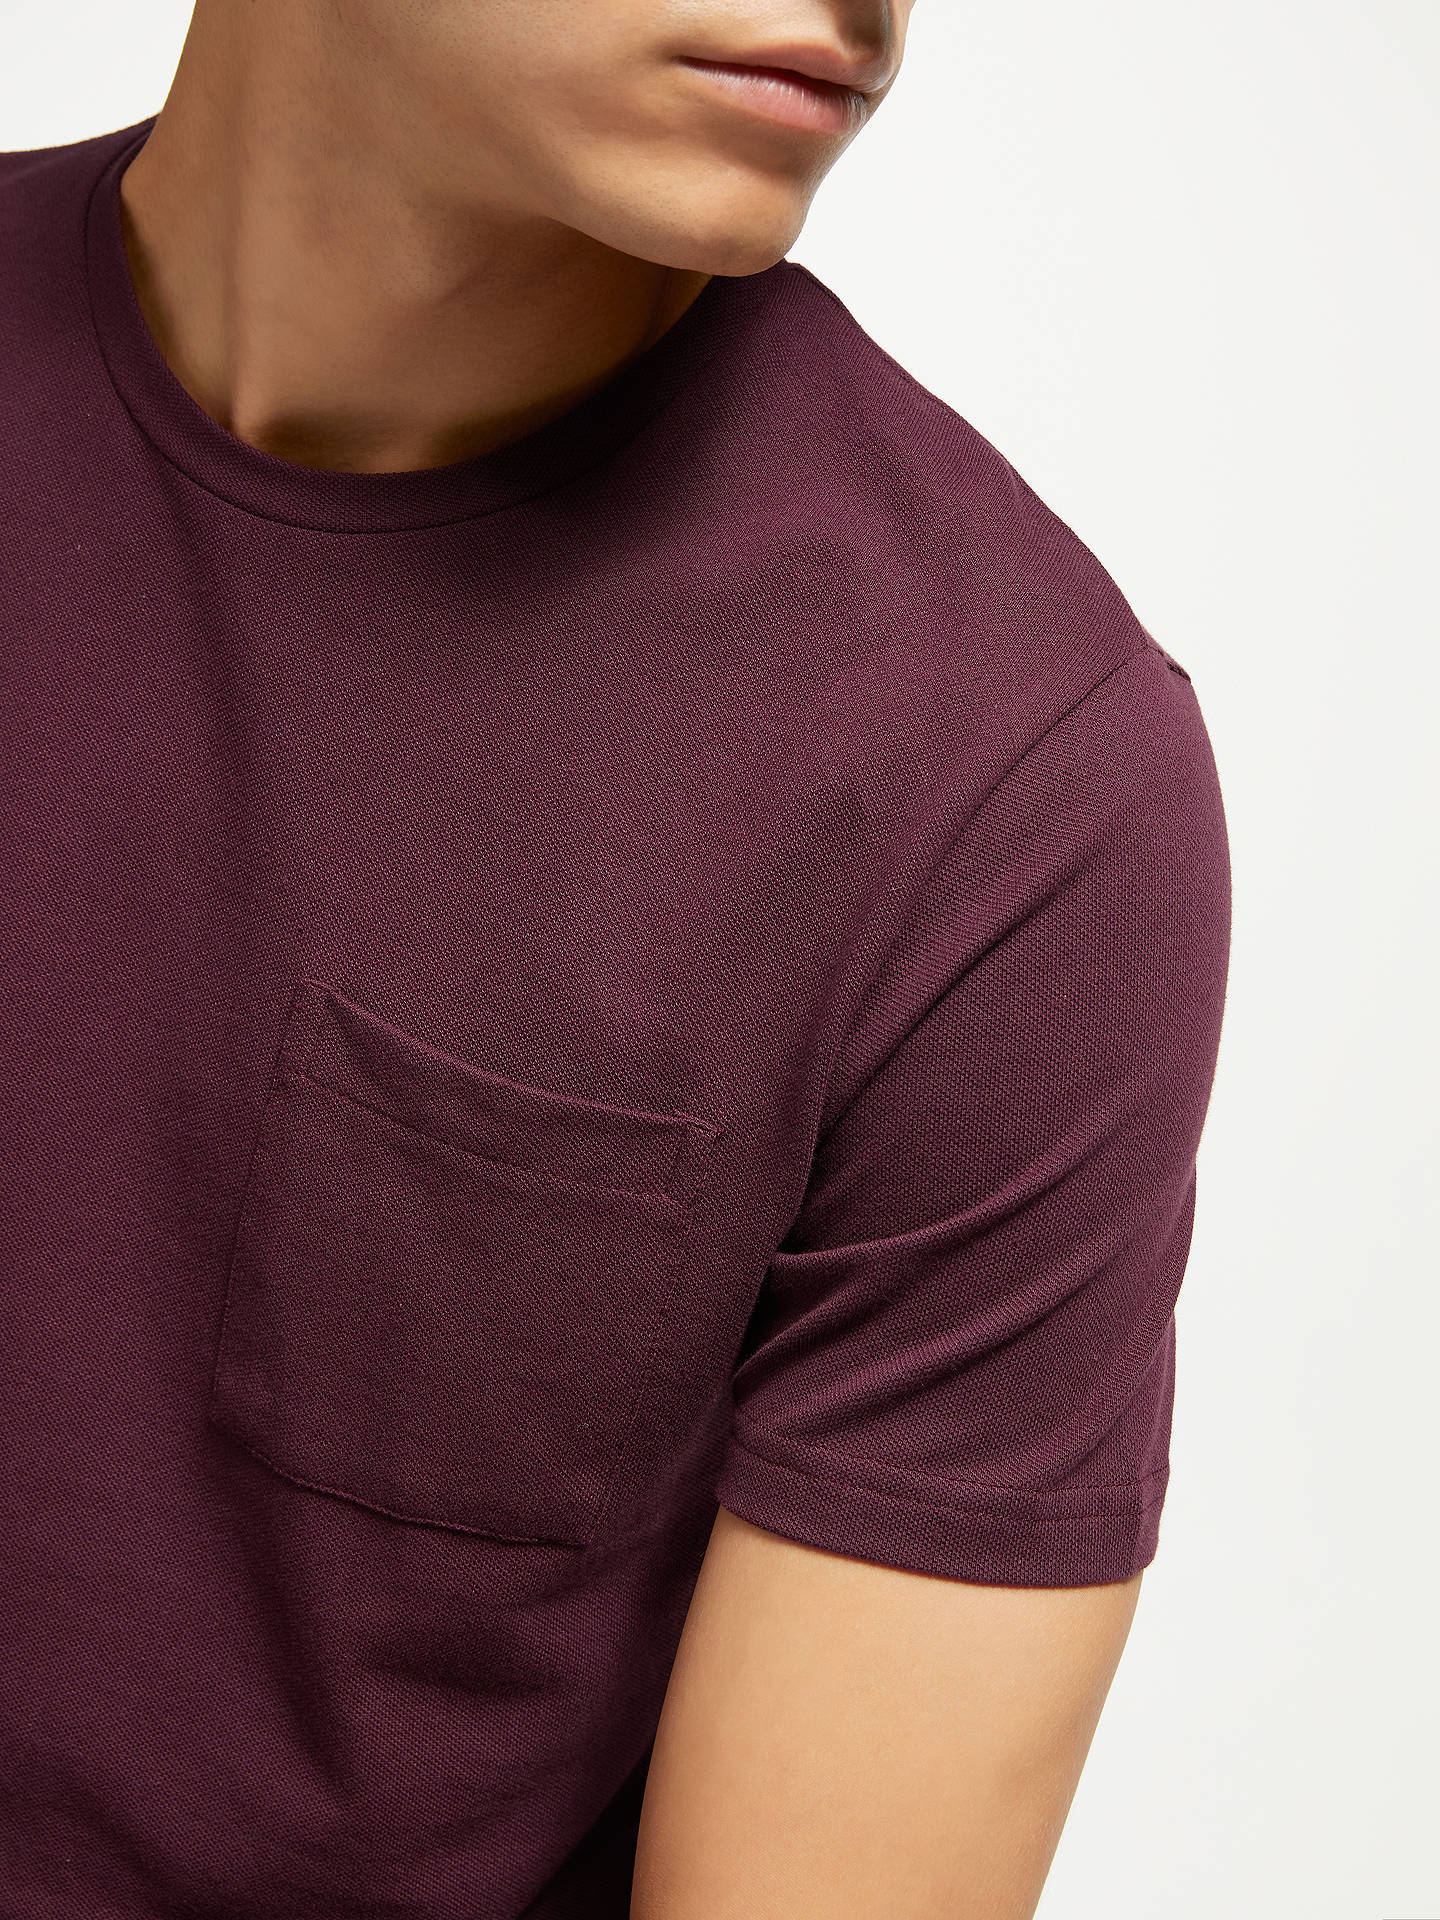 BuyKin Plain Pique T-Shirt, Purple, S Online at johnlewis.com